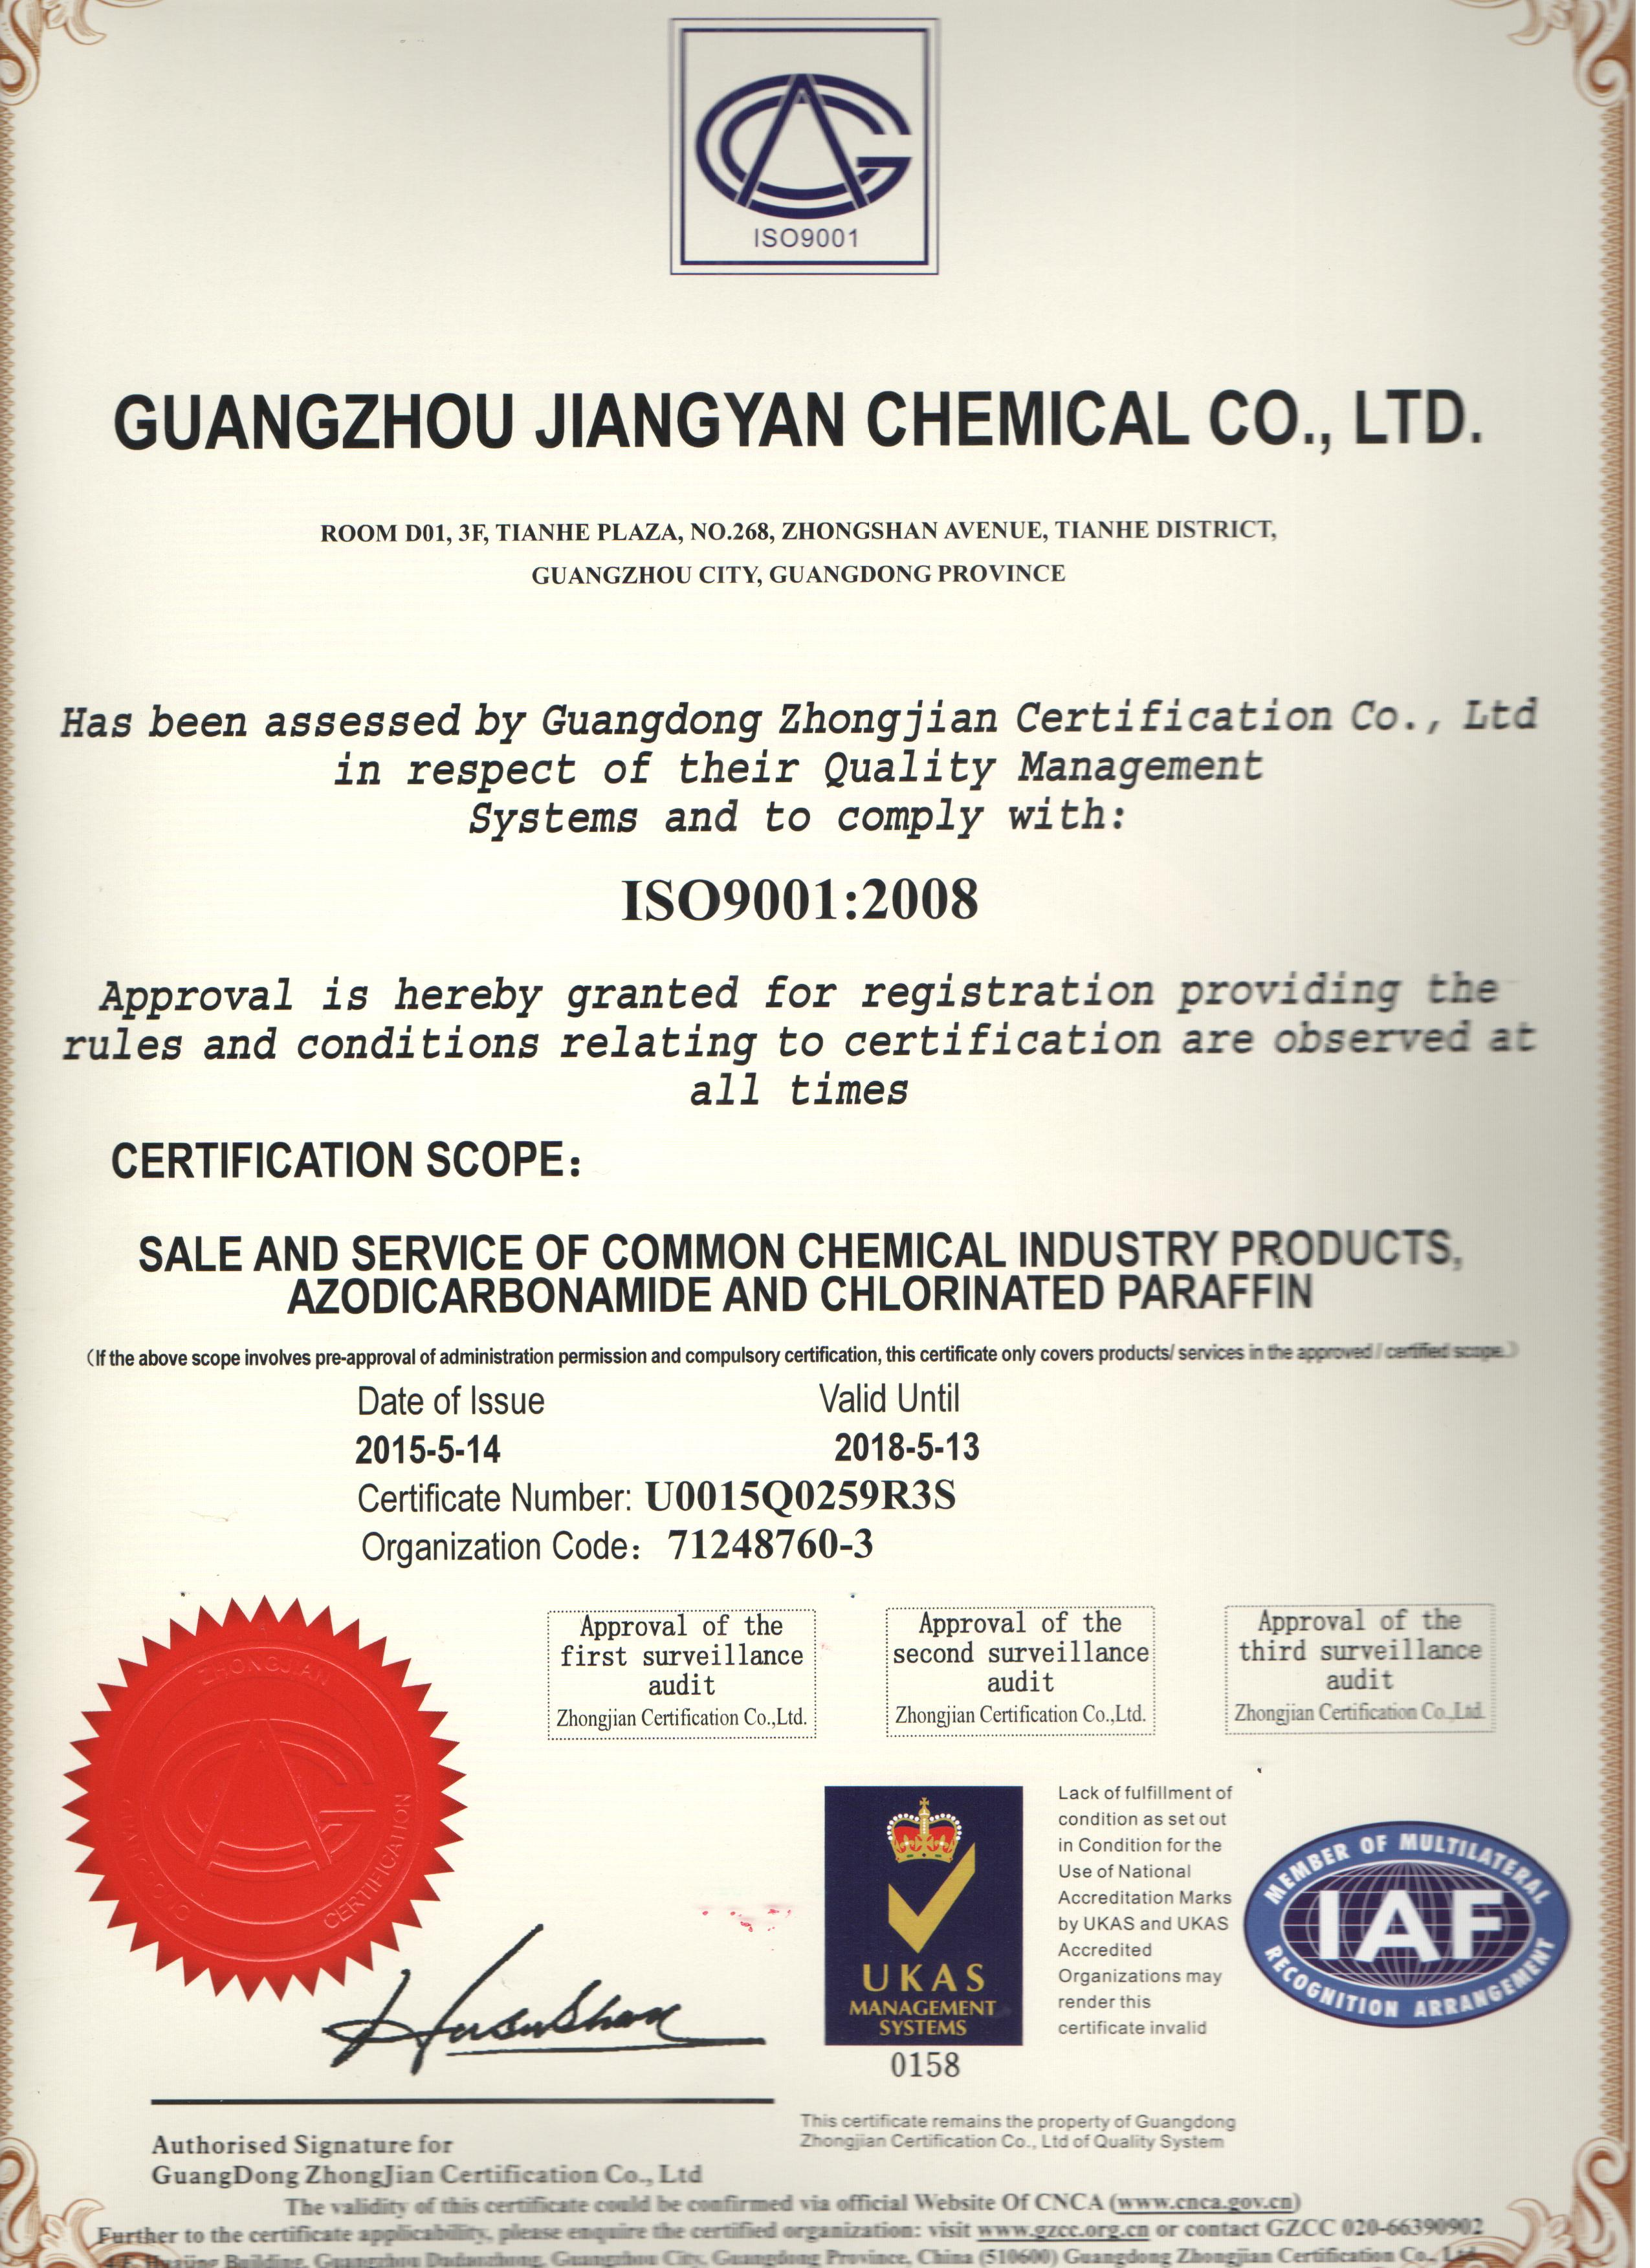 ISO9001 for Azodicarbonamide and Chlorinated paraffin